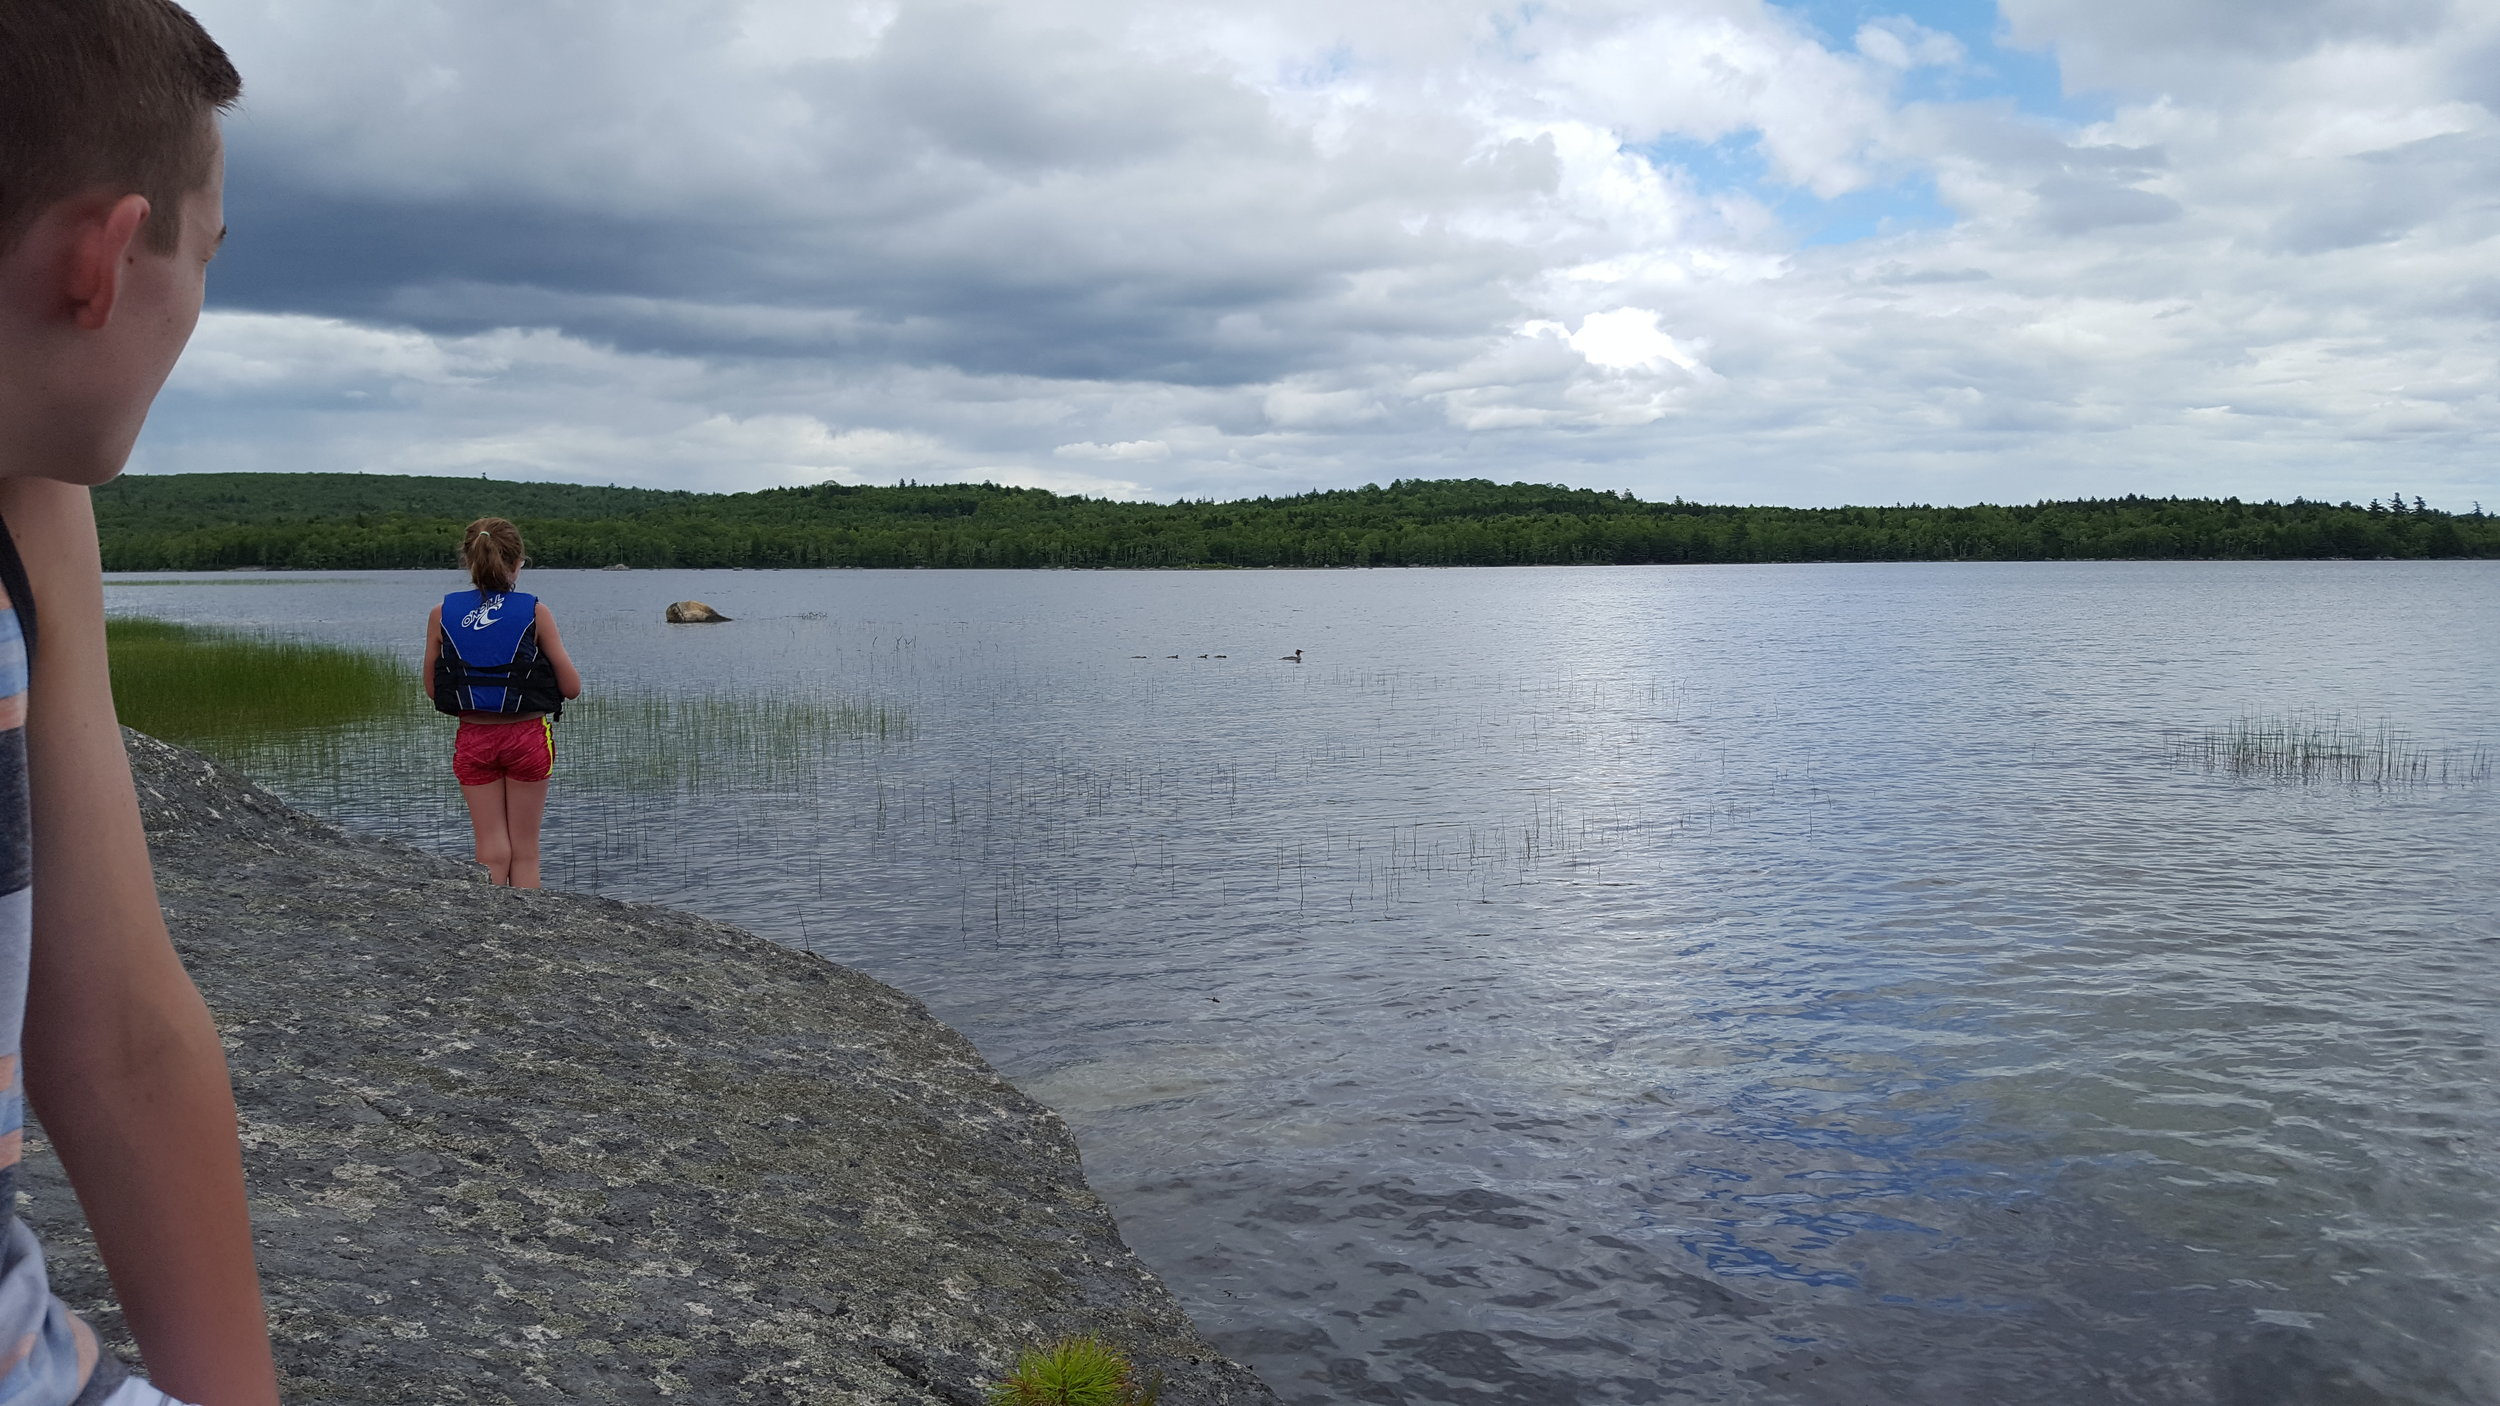 Henry and Emma watch the mergansers